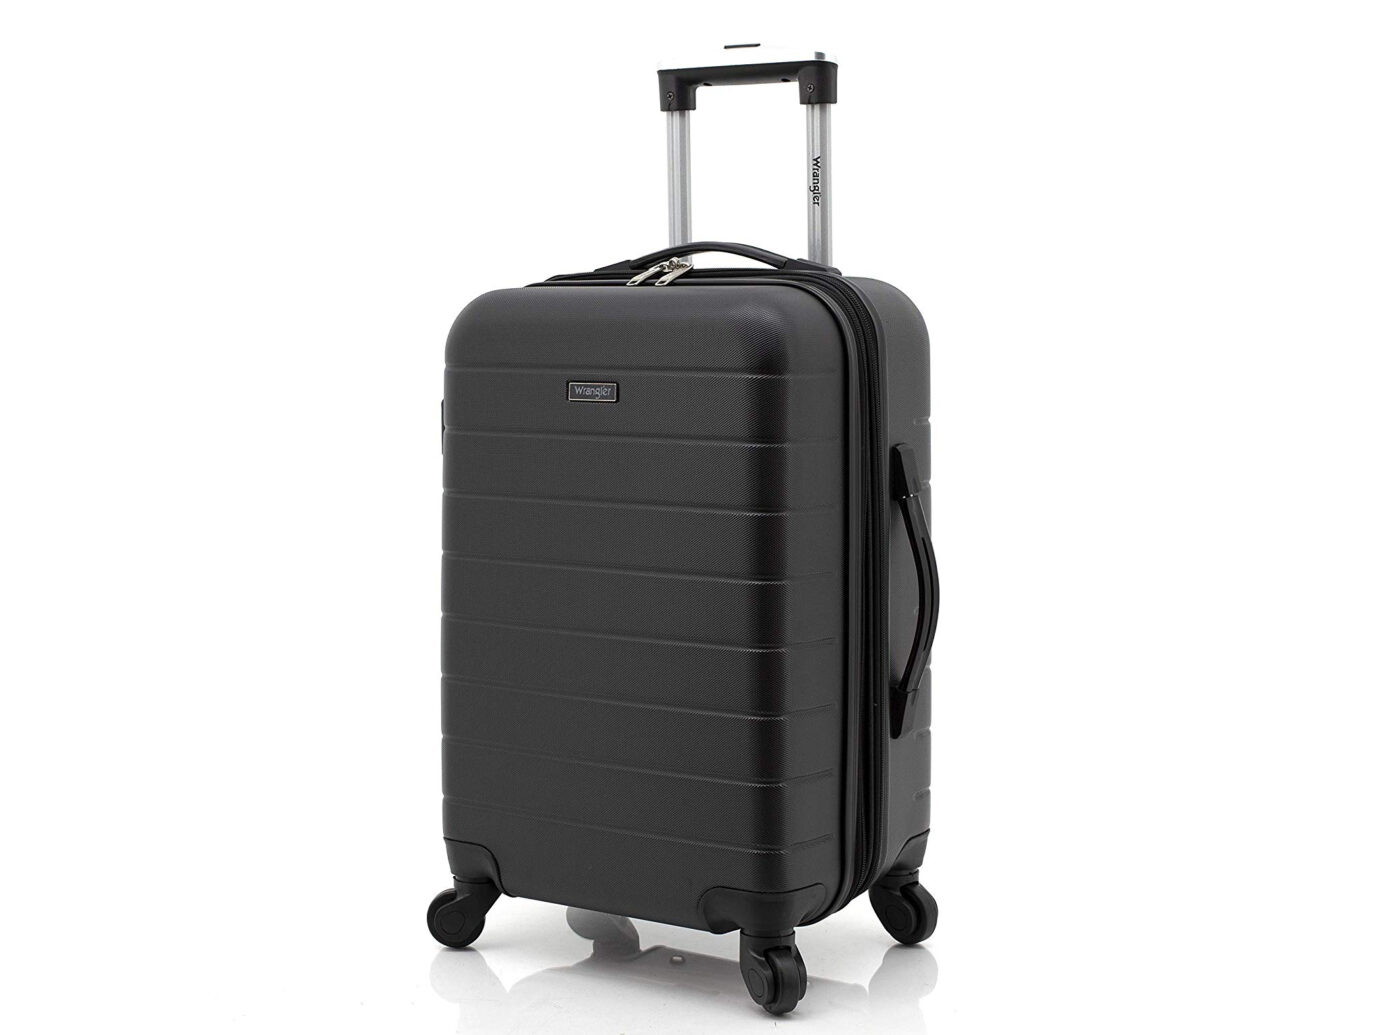 Wrangler 20-Inch Smart Spinner Carry-On Luggage